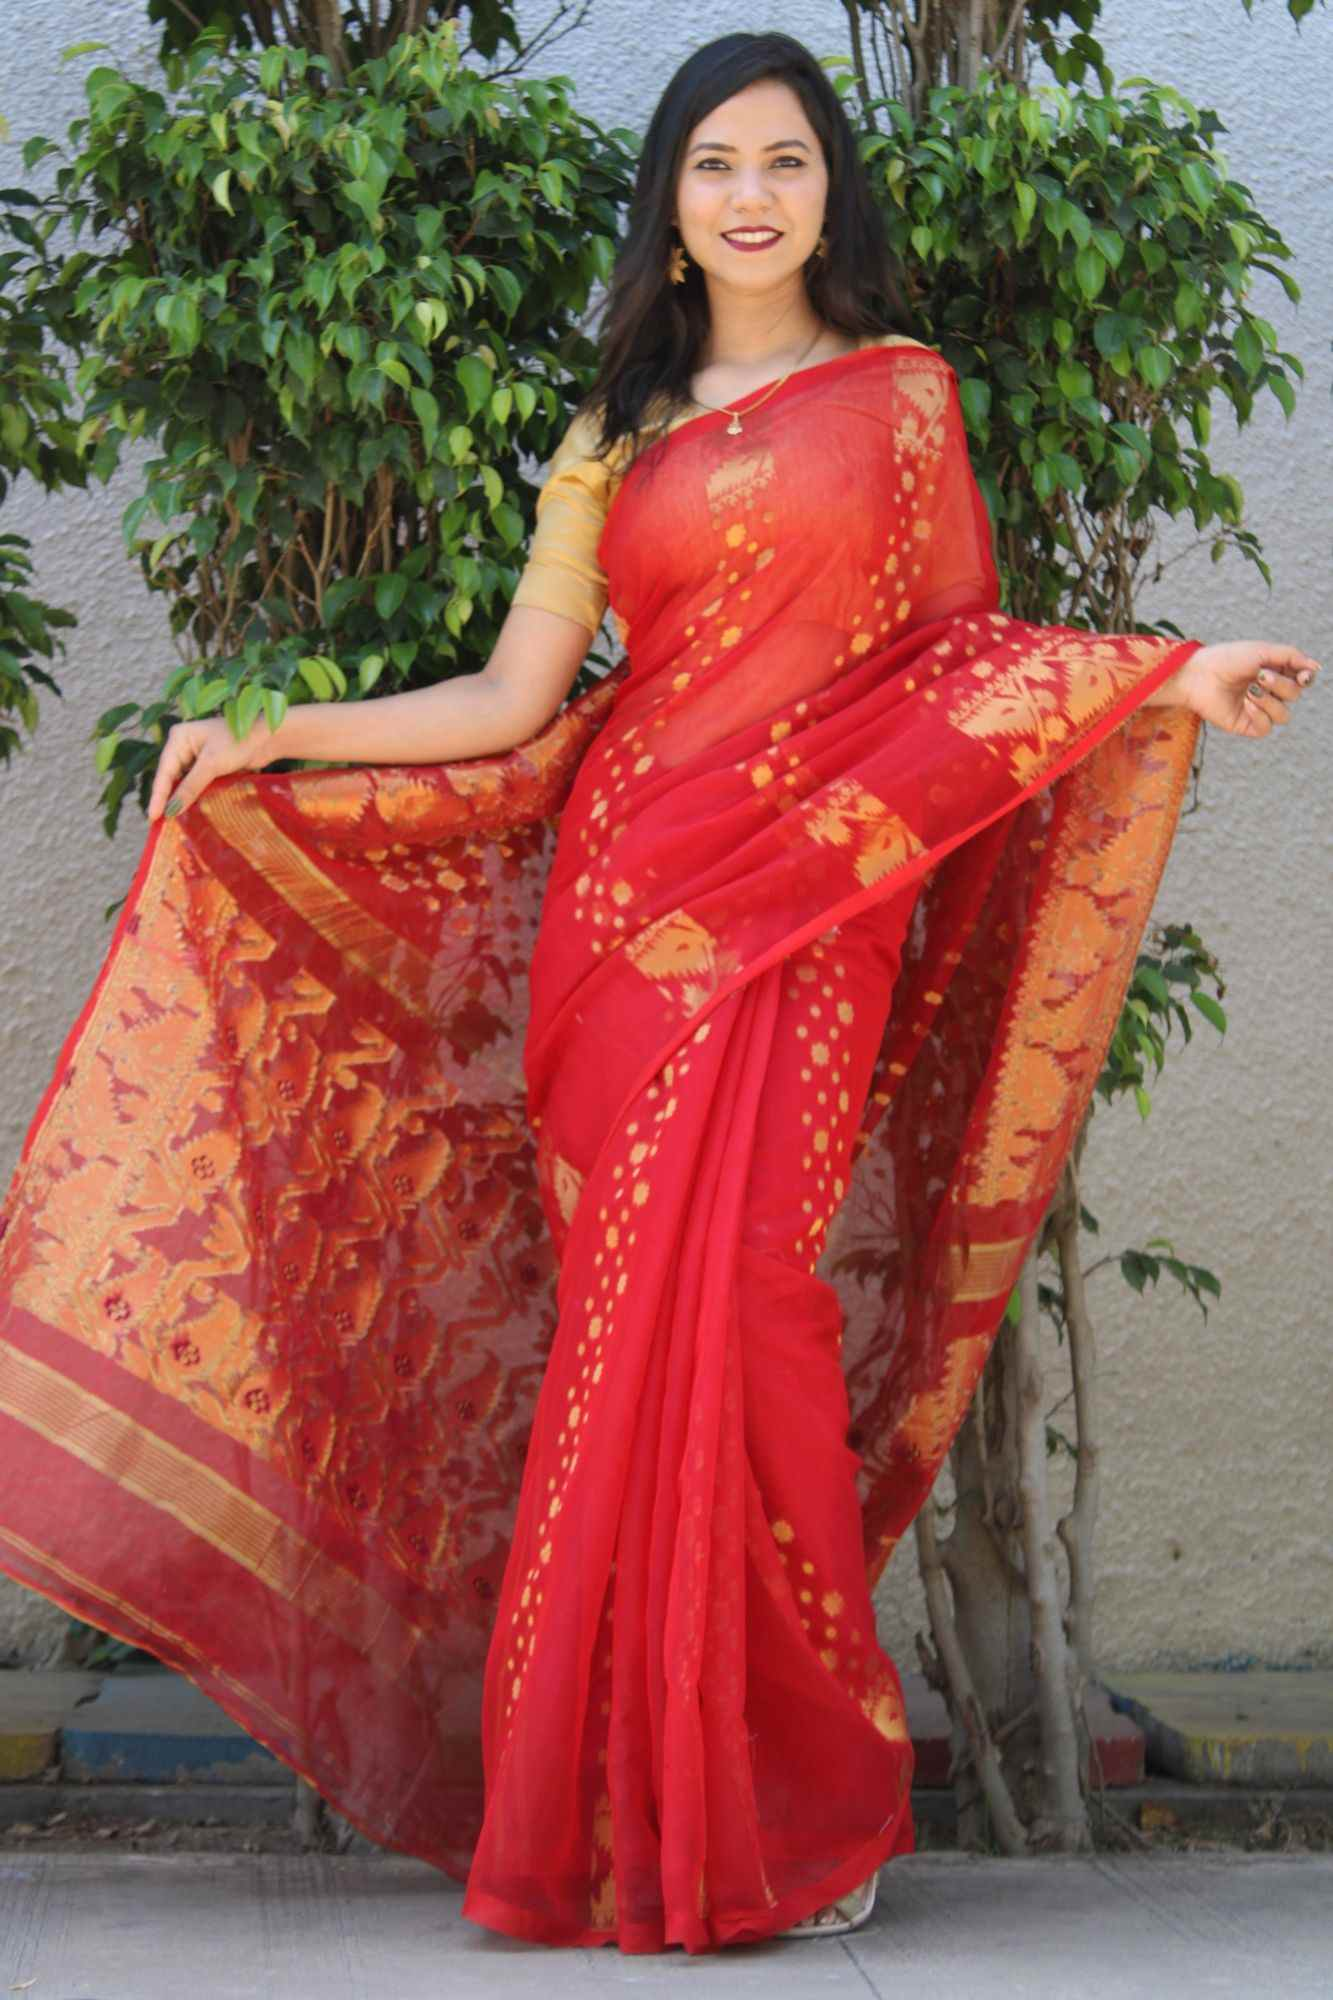 Cotton Silk Dhakai Jamdani Handloom Saree with Weaving Thread Work Work and Leaf Design Wrap in 1 Minute Saree